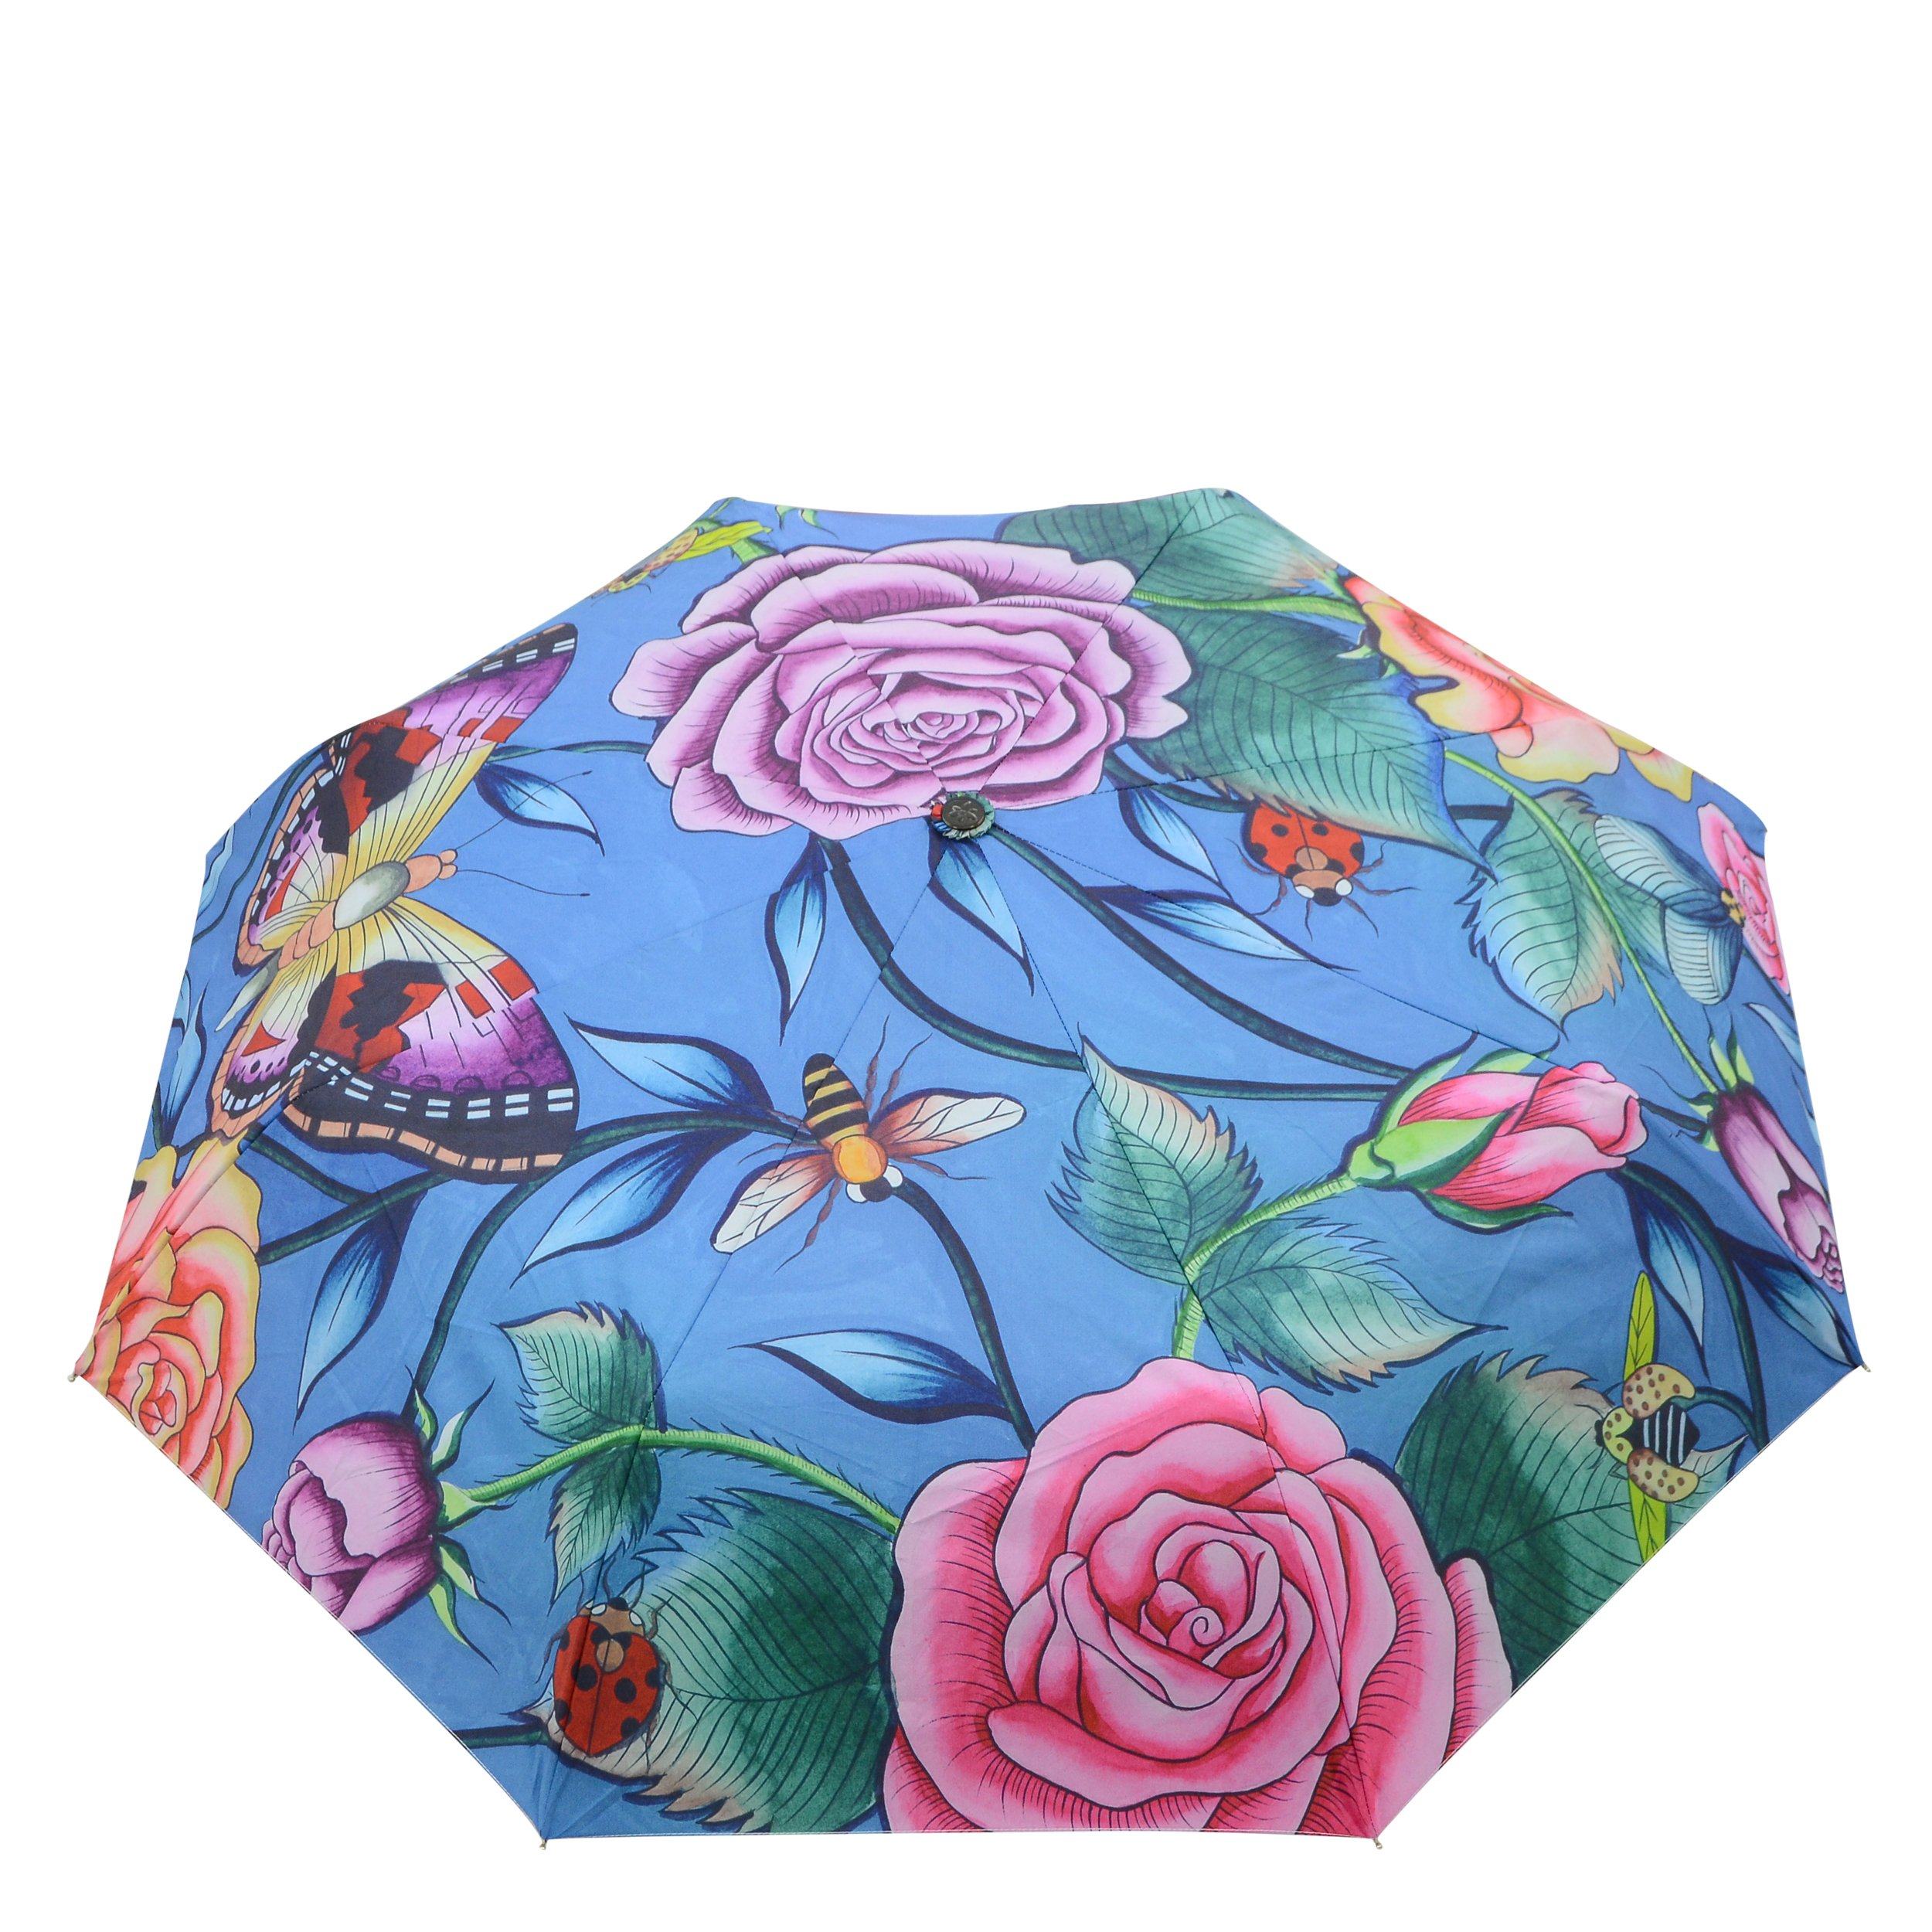 Anuschka Umbrella AUTO Open/Close | UPF 50+ Max Sun protection | 38'' Waterproof Canopy | Fits in Handbag | Windproof Flexible Fiberglass | Roses D'Amour